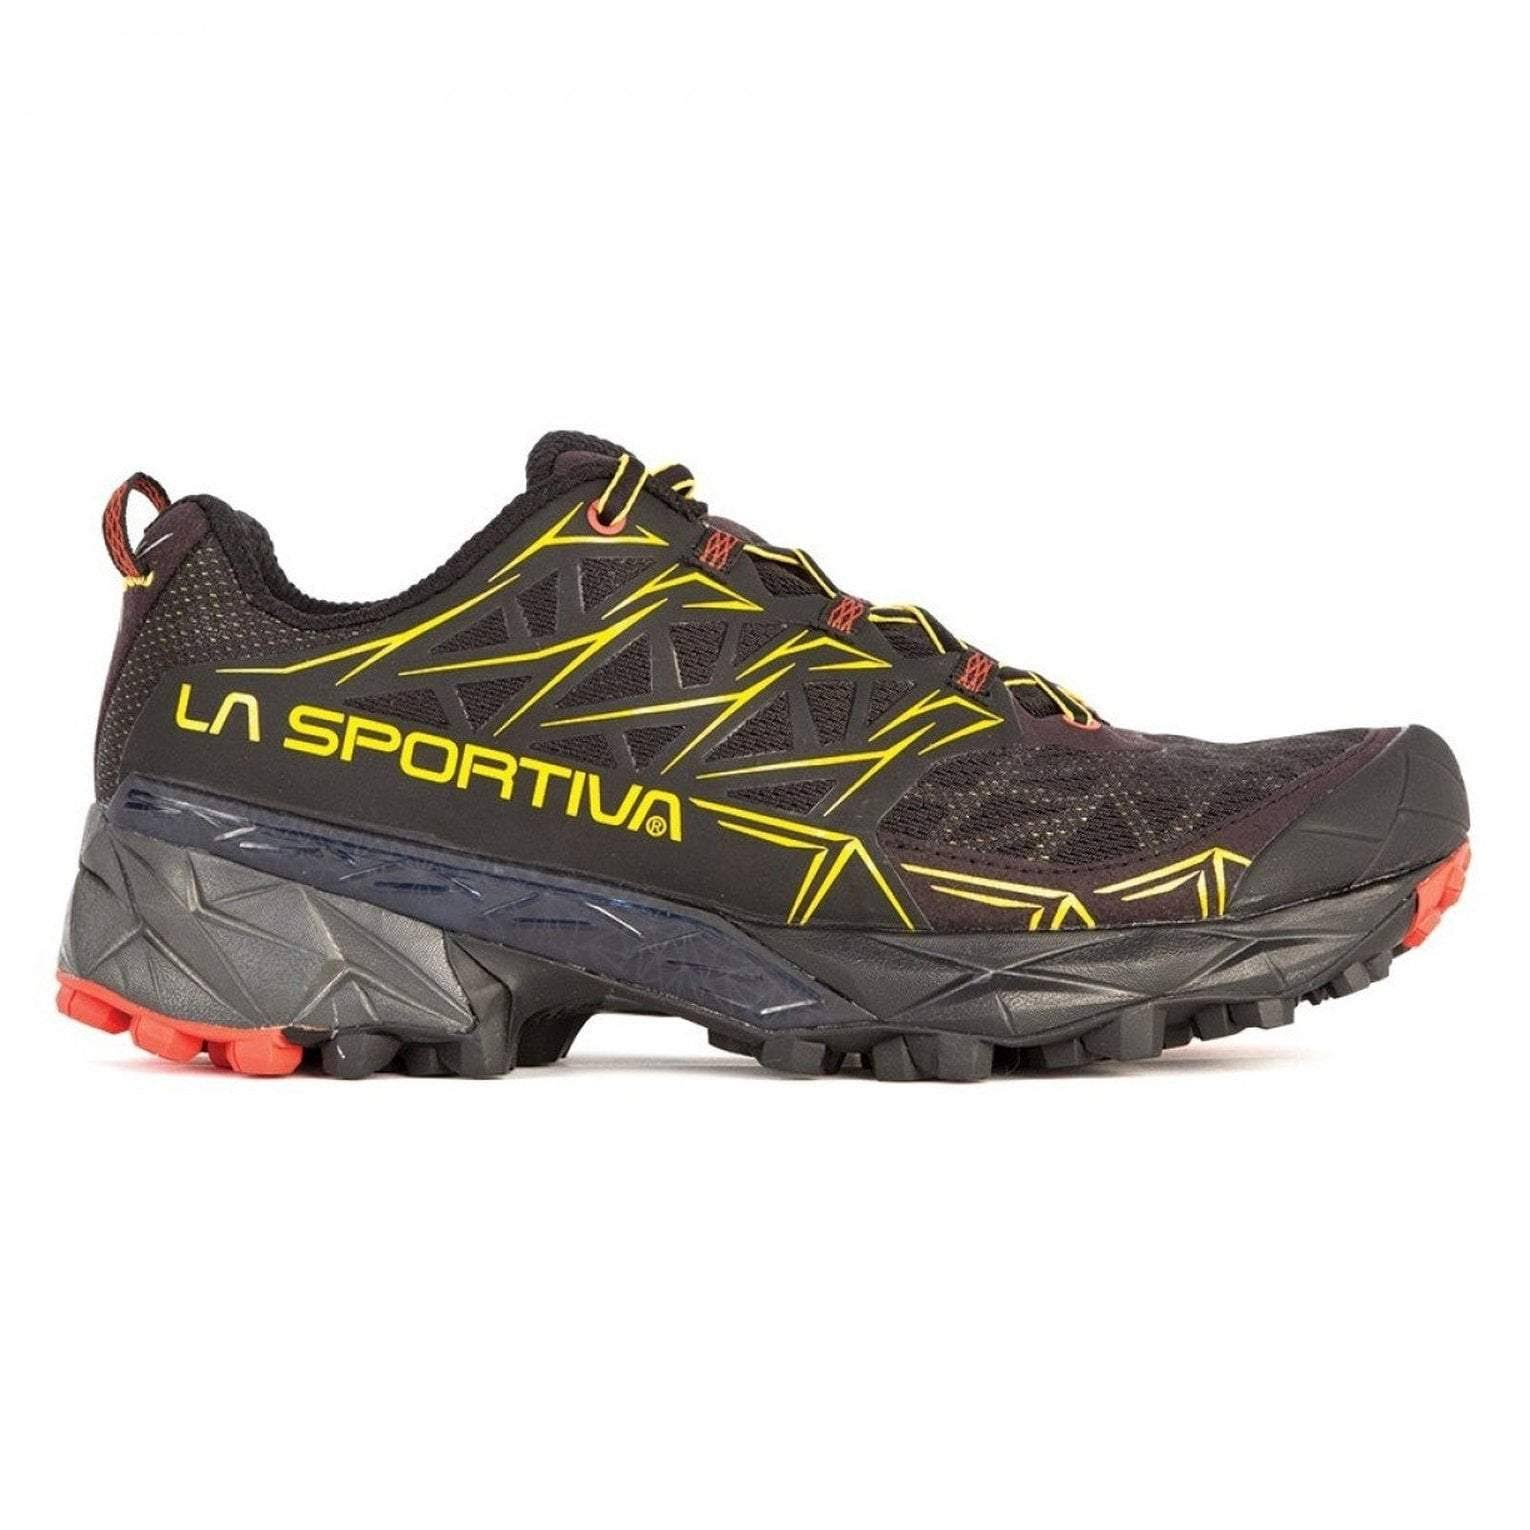 La Sportiva Men's Akyra Trail-Running Shoes - Black, EU44